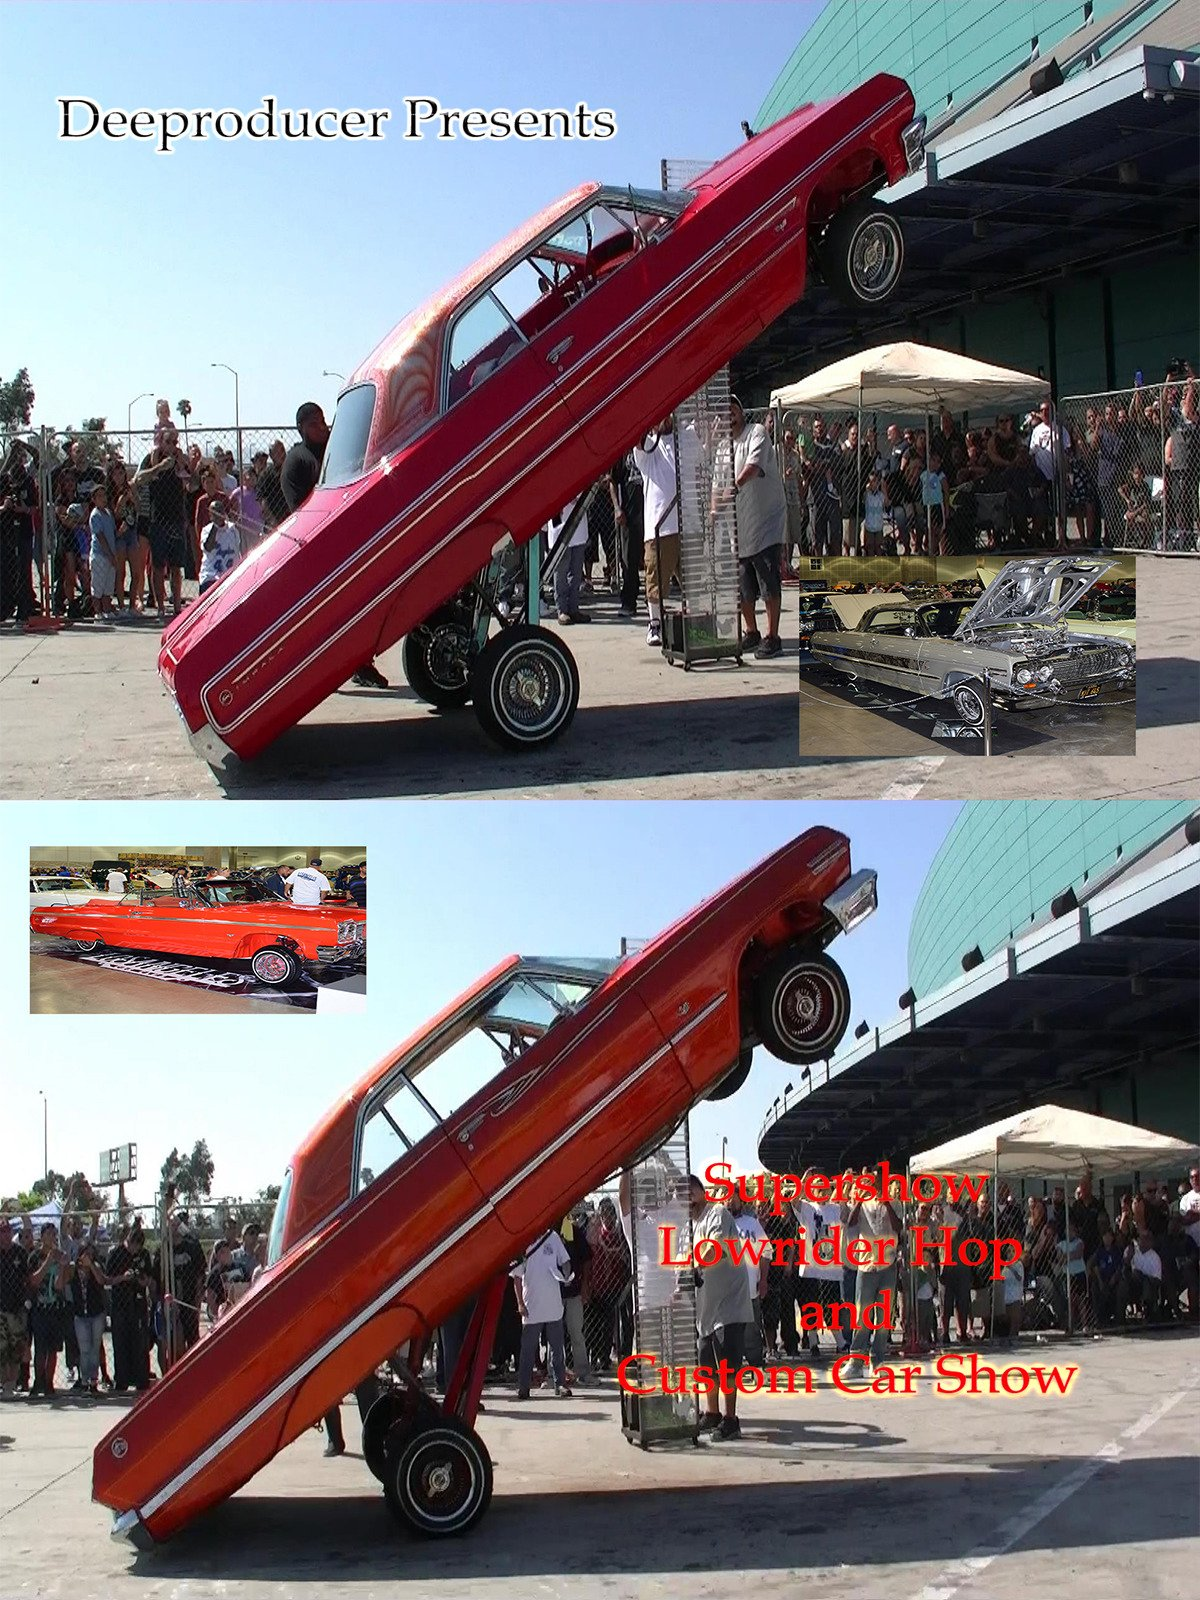 Deeproducer Presents Supershow Lowrider Hop and Car Show